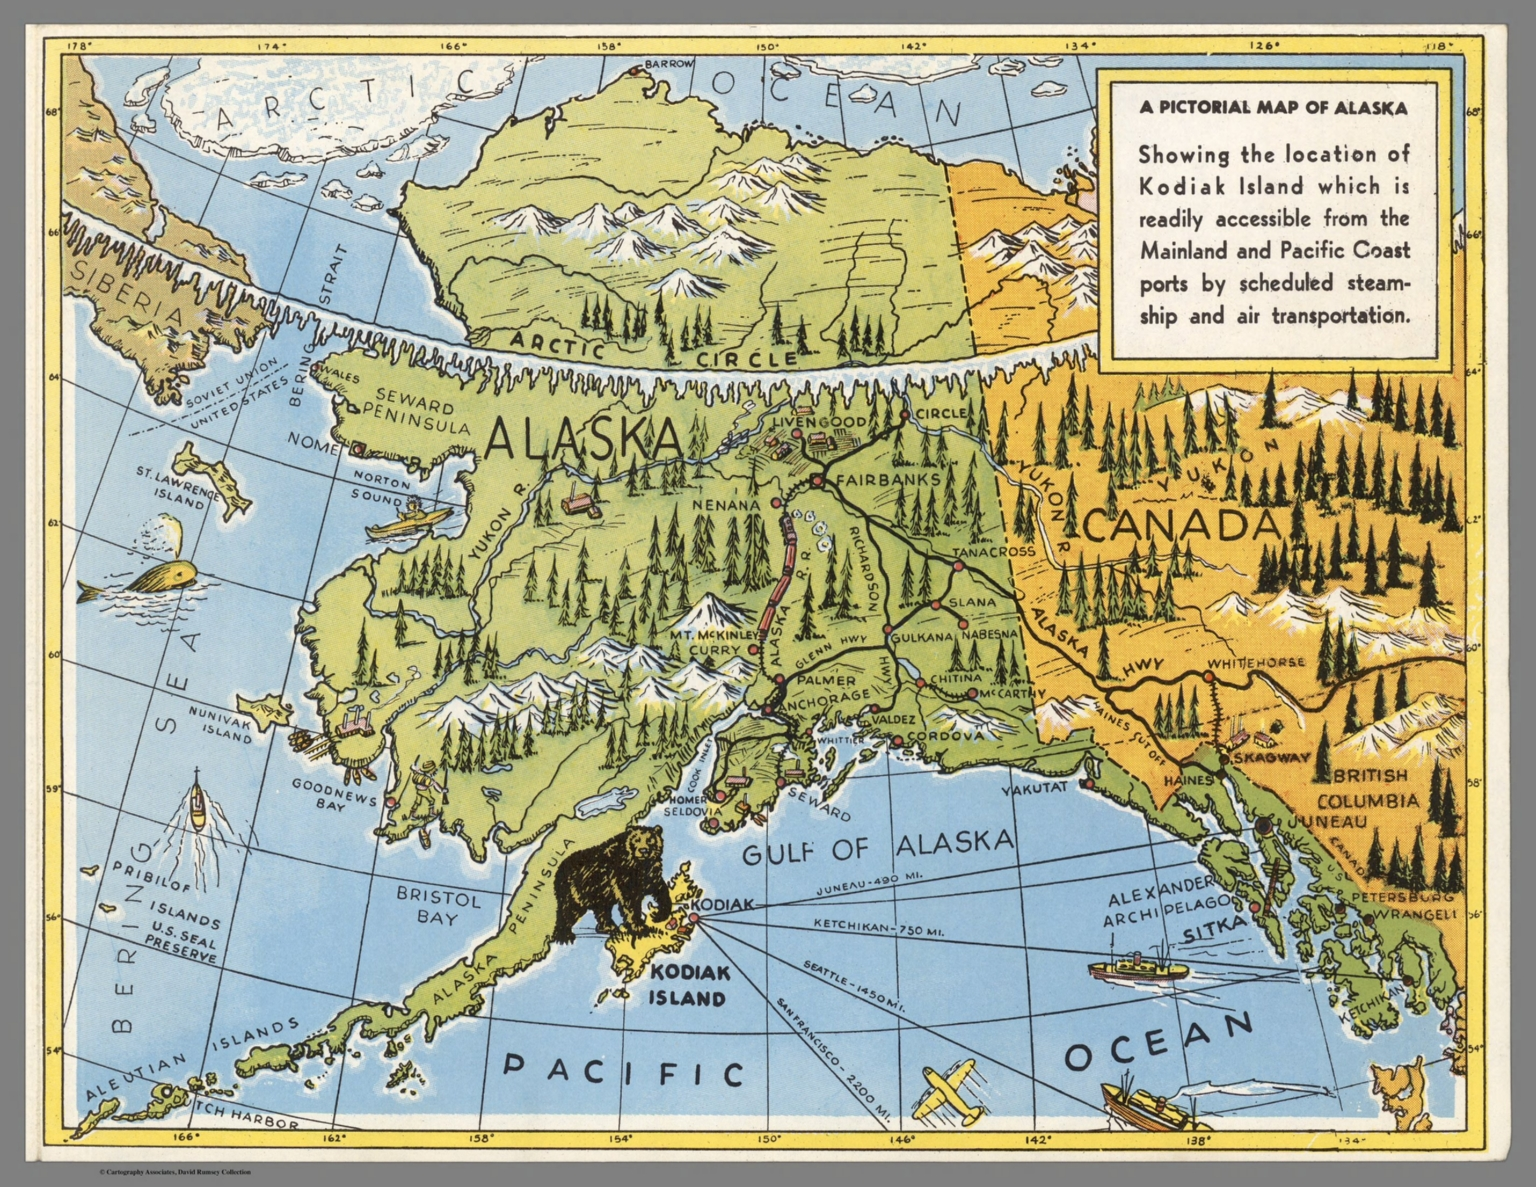 Pictorial Map of Alaska. - David Rumsey Historical Map Collection